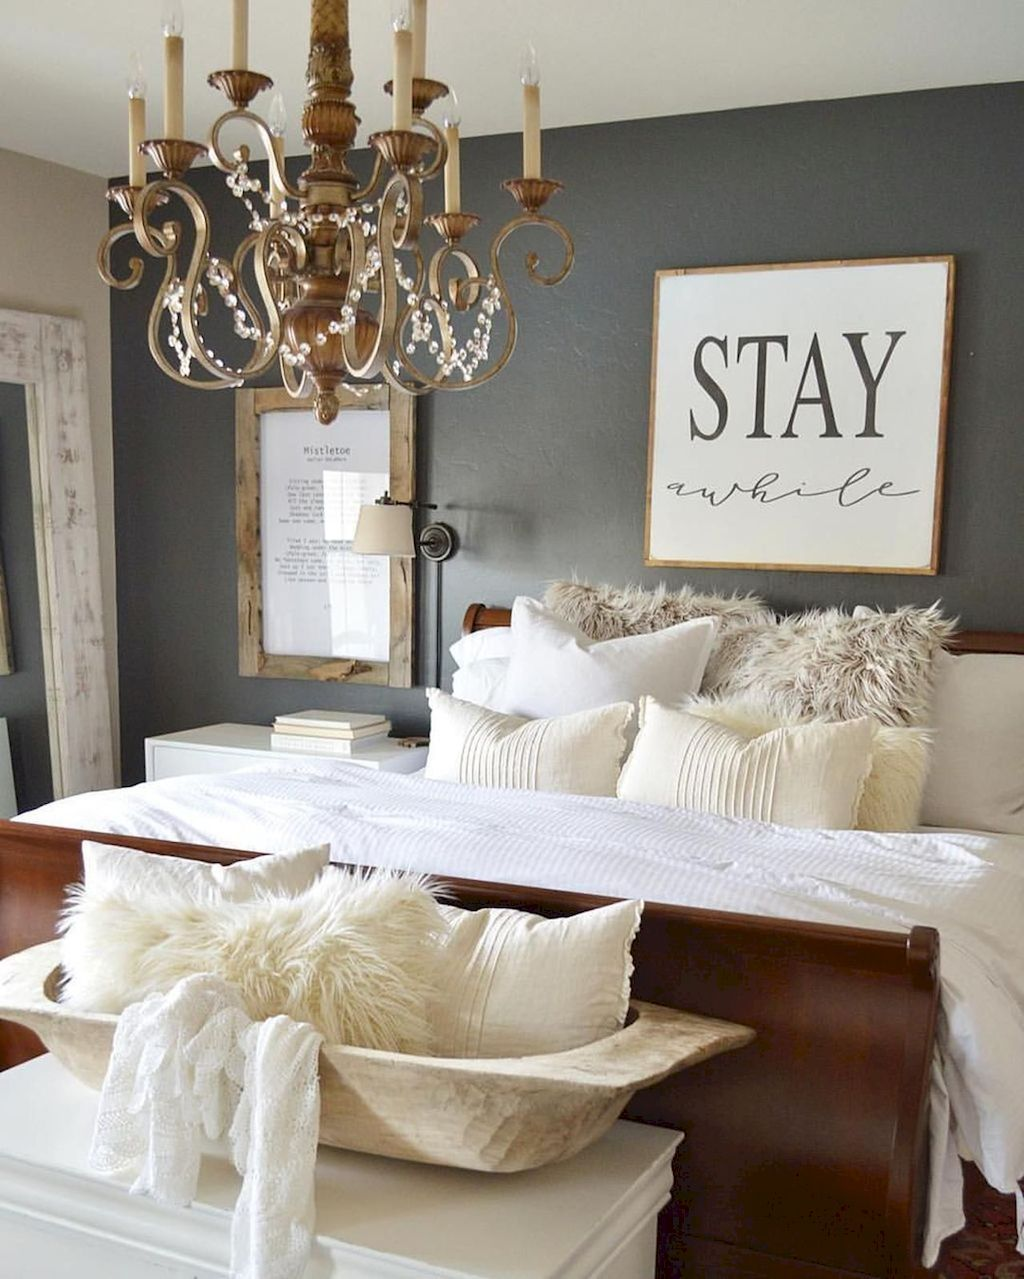 35+ Awesome Farmhouse Bedroom Design and Decor Ideas images